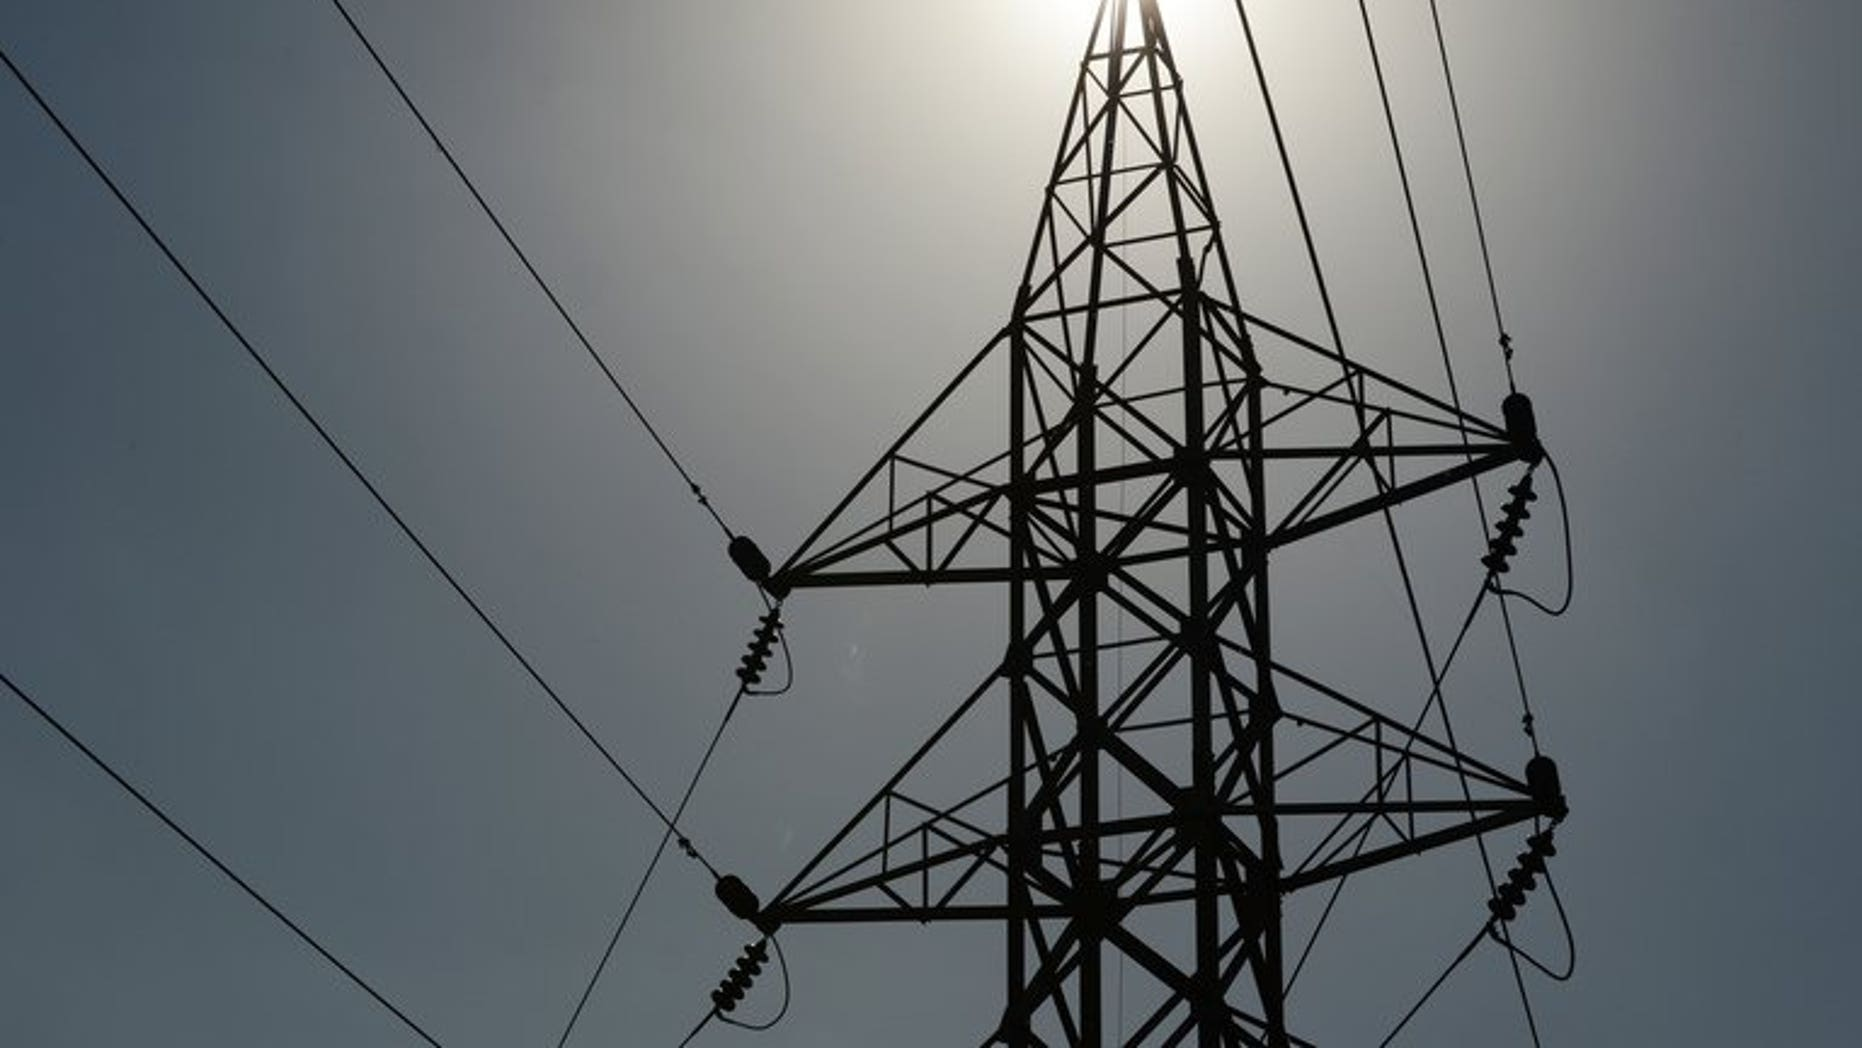 File photo. A Sri Lankan man suffered a fatal heart attack after being presented with a shocking electricity bill, a media report said.